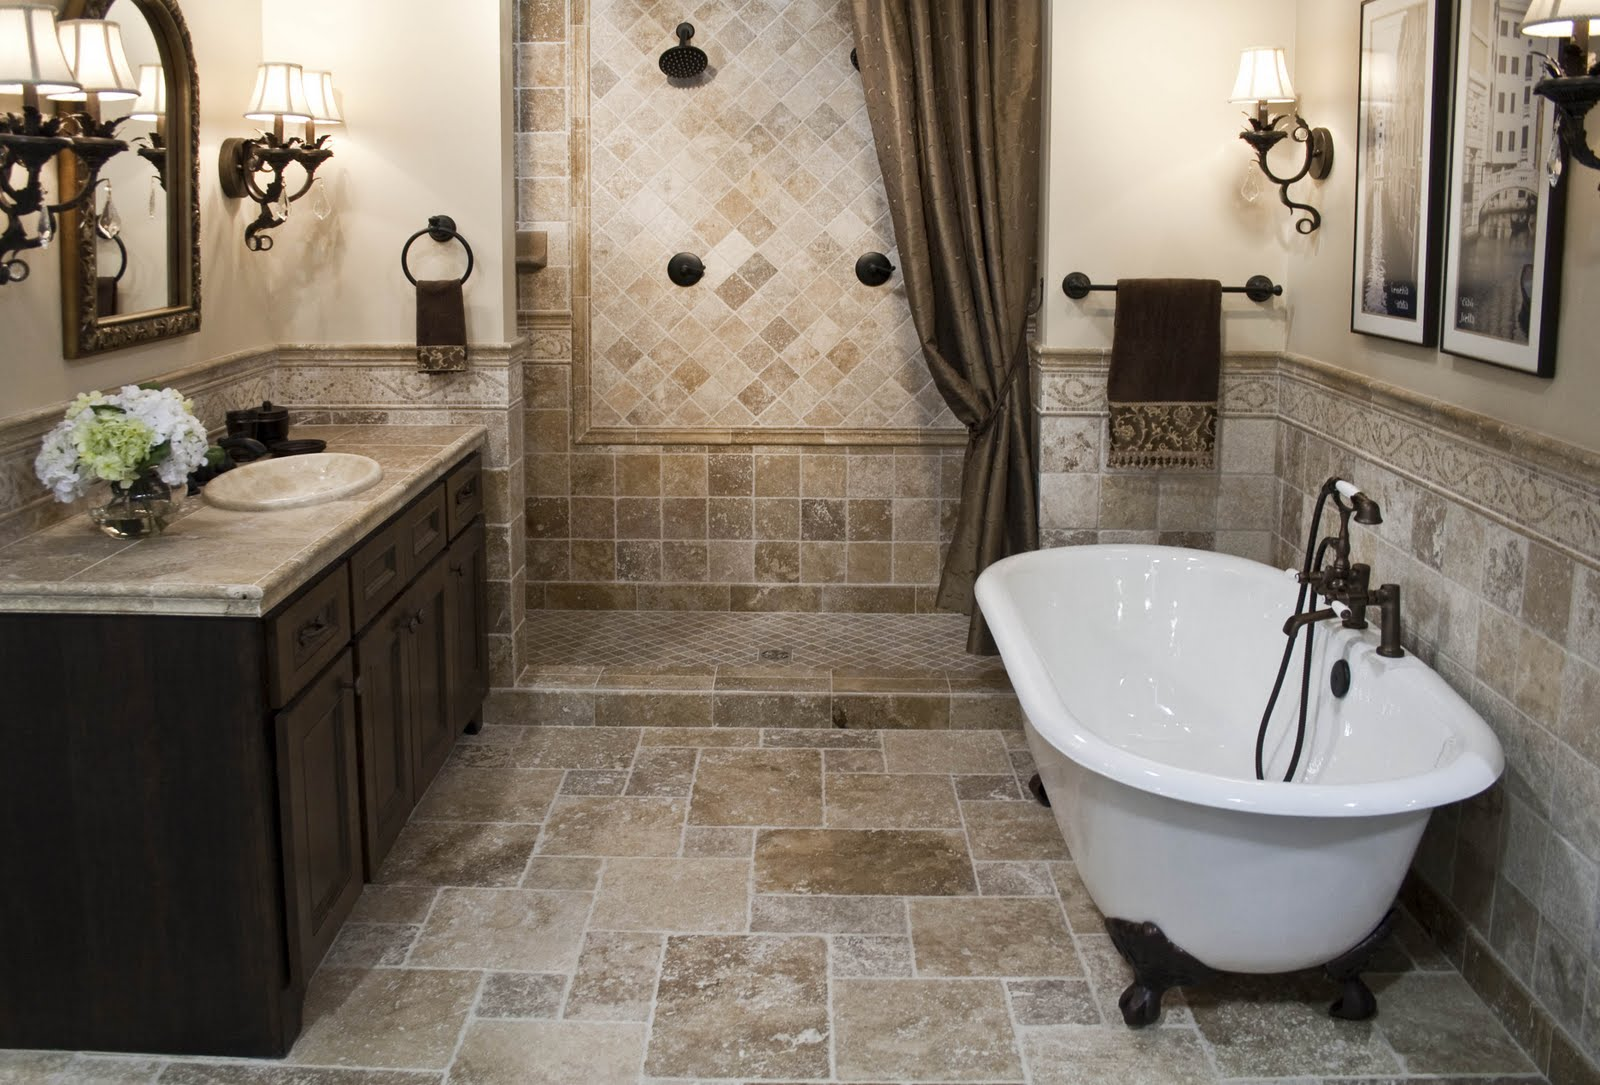 DIY Remodel Ideas To Improve And To Decorate Your Bathroom - Diy bathroom remodel for small bathroom ideas